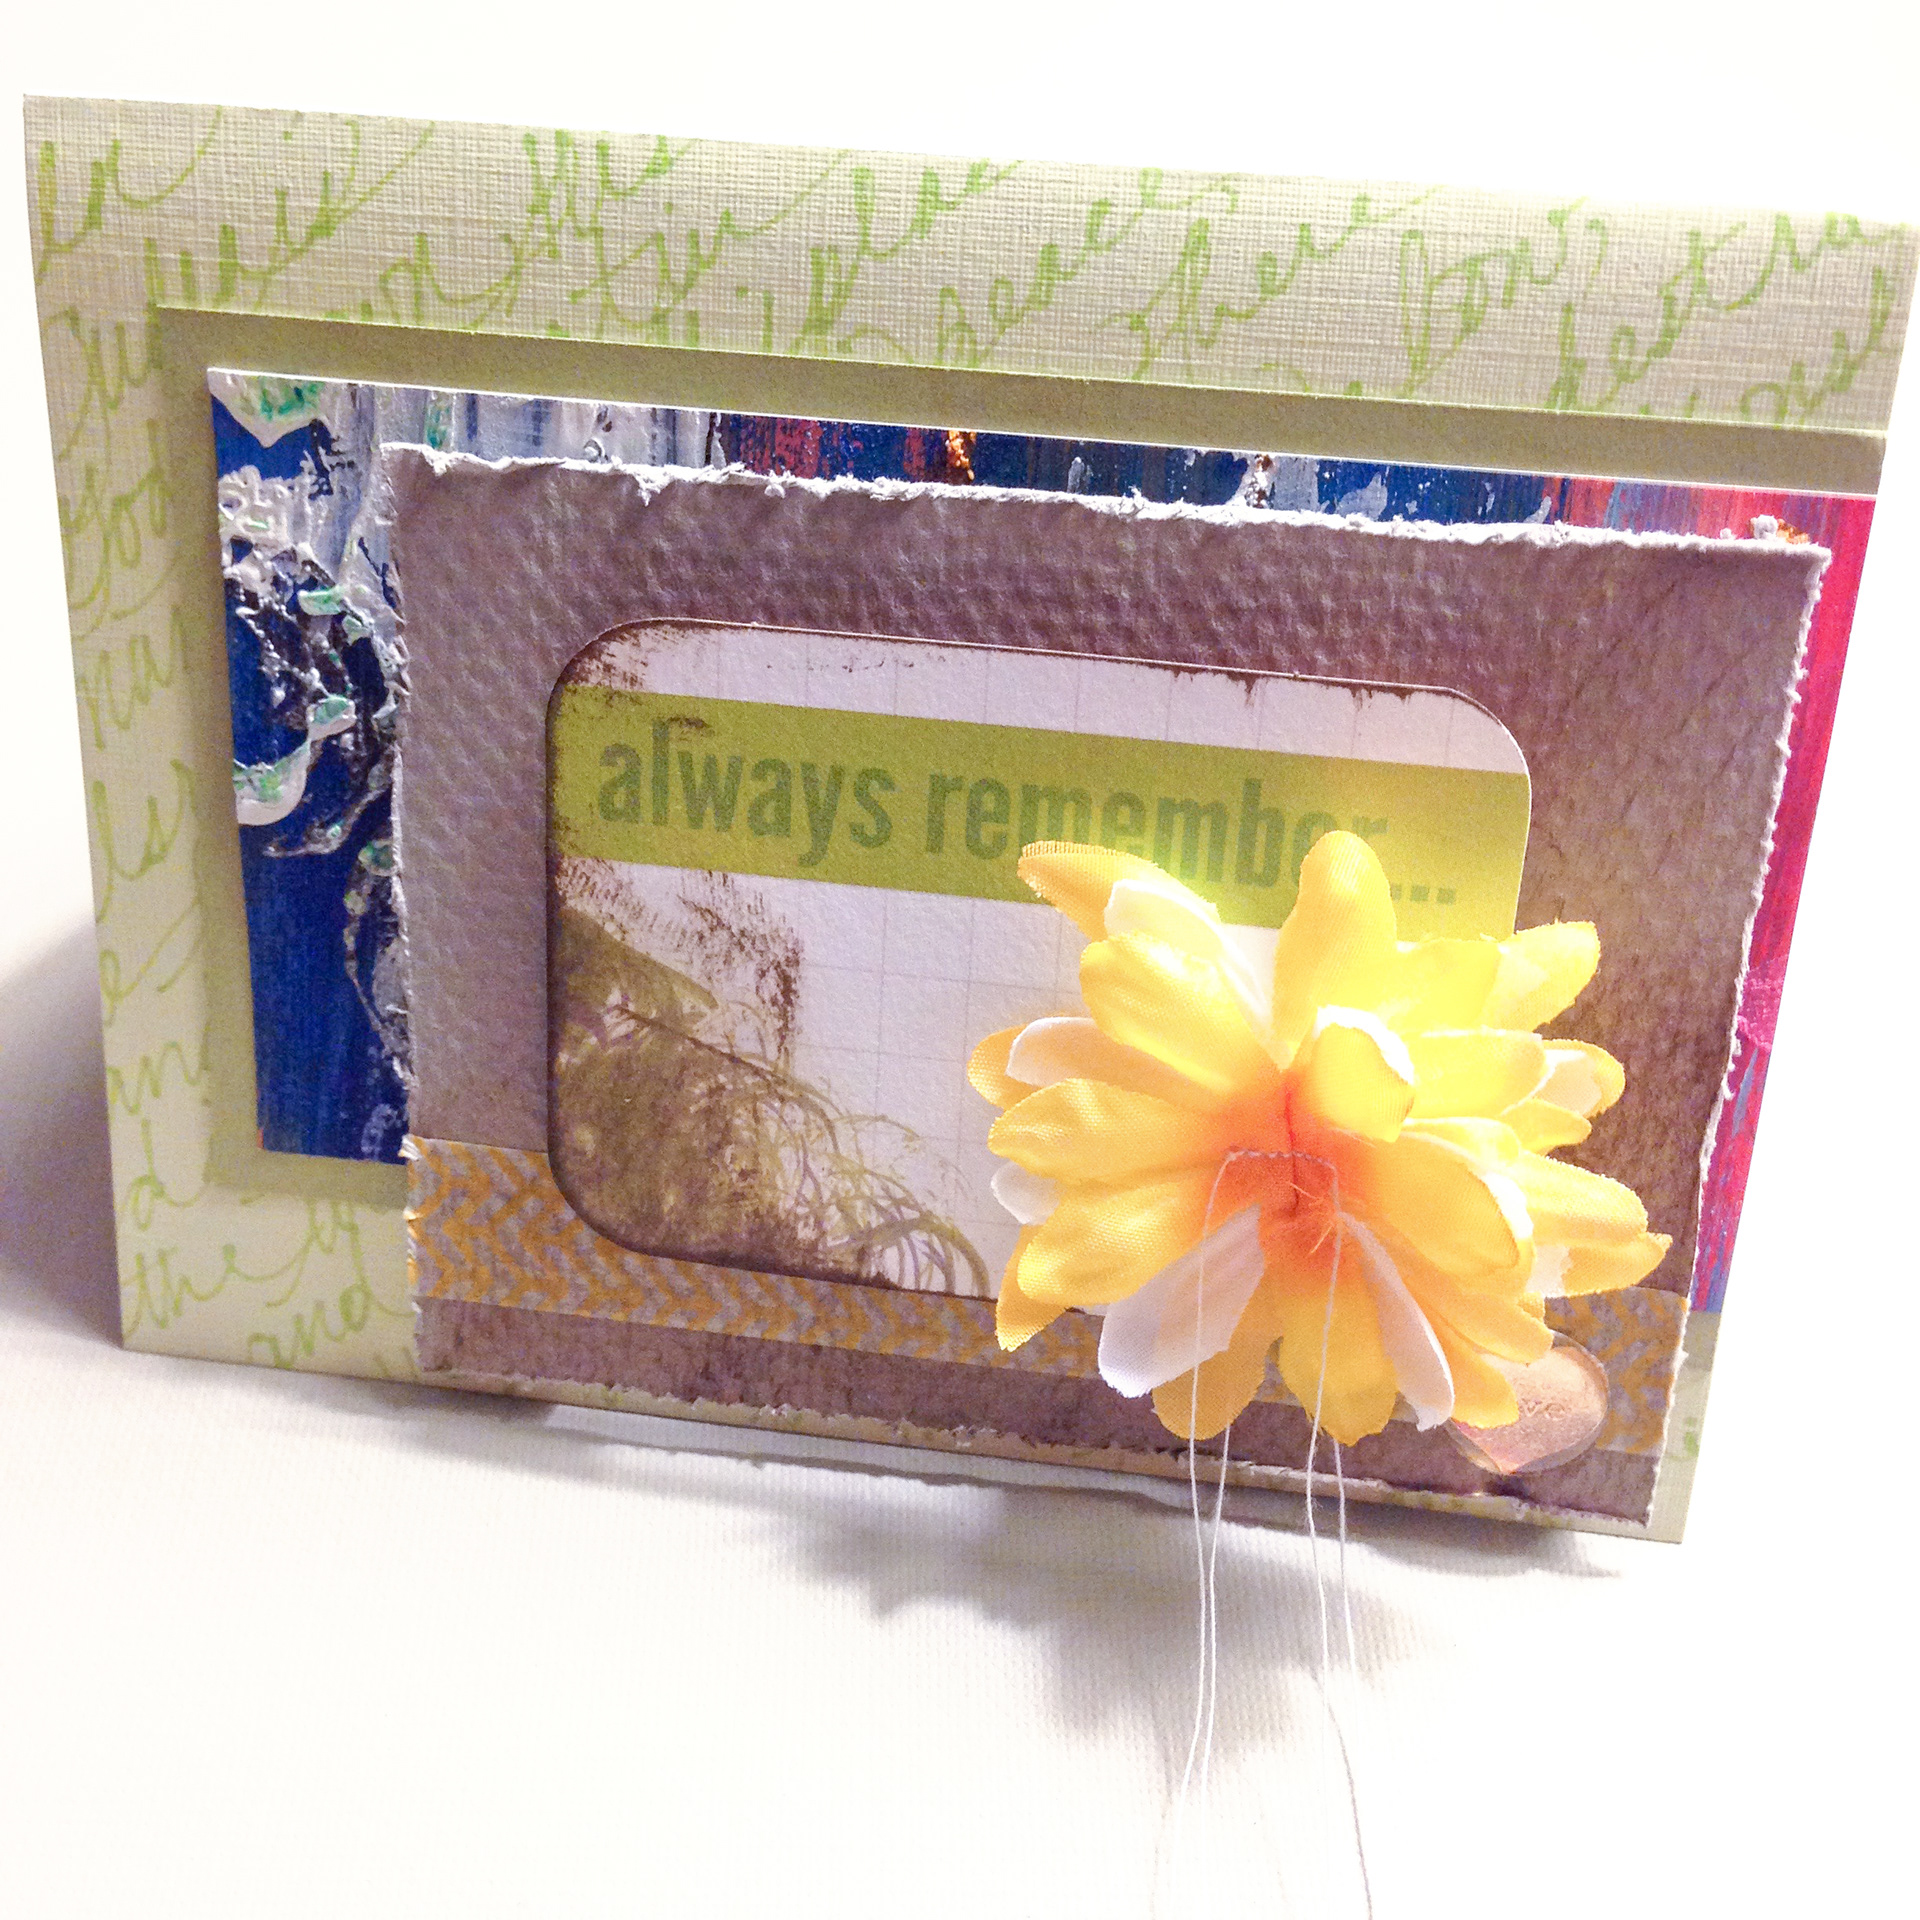 Yesterdays pickles amelia tatalovic handmade greeting cards a sympathy card with a handwritten psalm in the background a heavily textured mixed media scrap and some other papers topped with several fabric flowers m4hsunfo